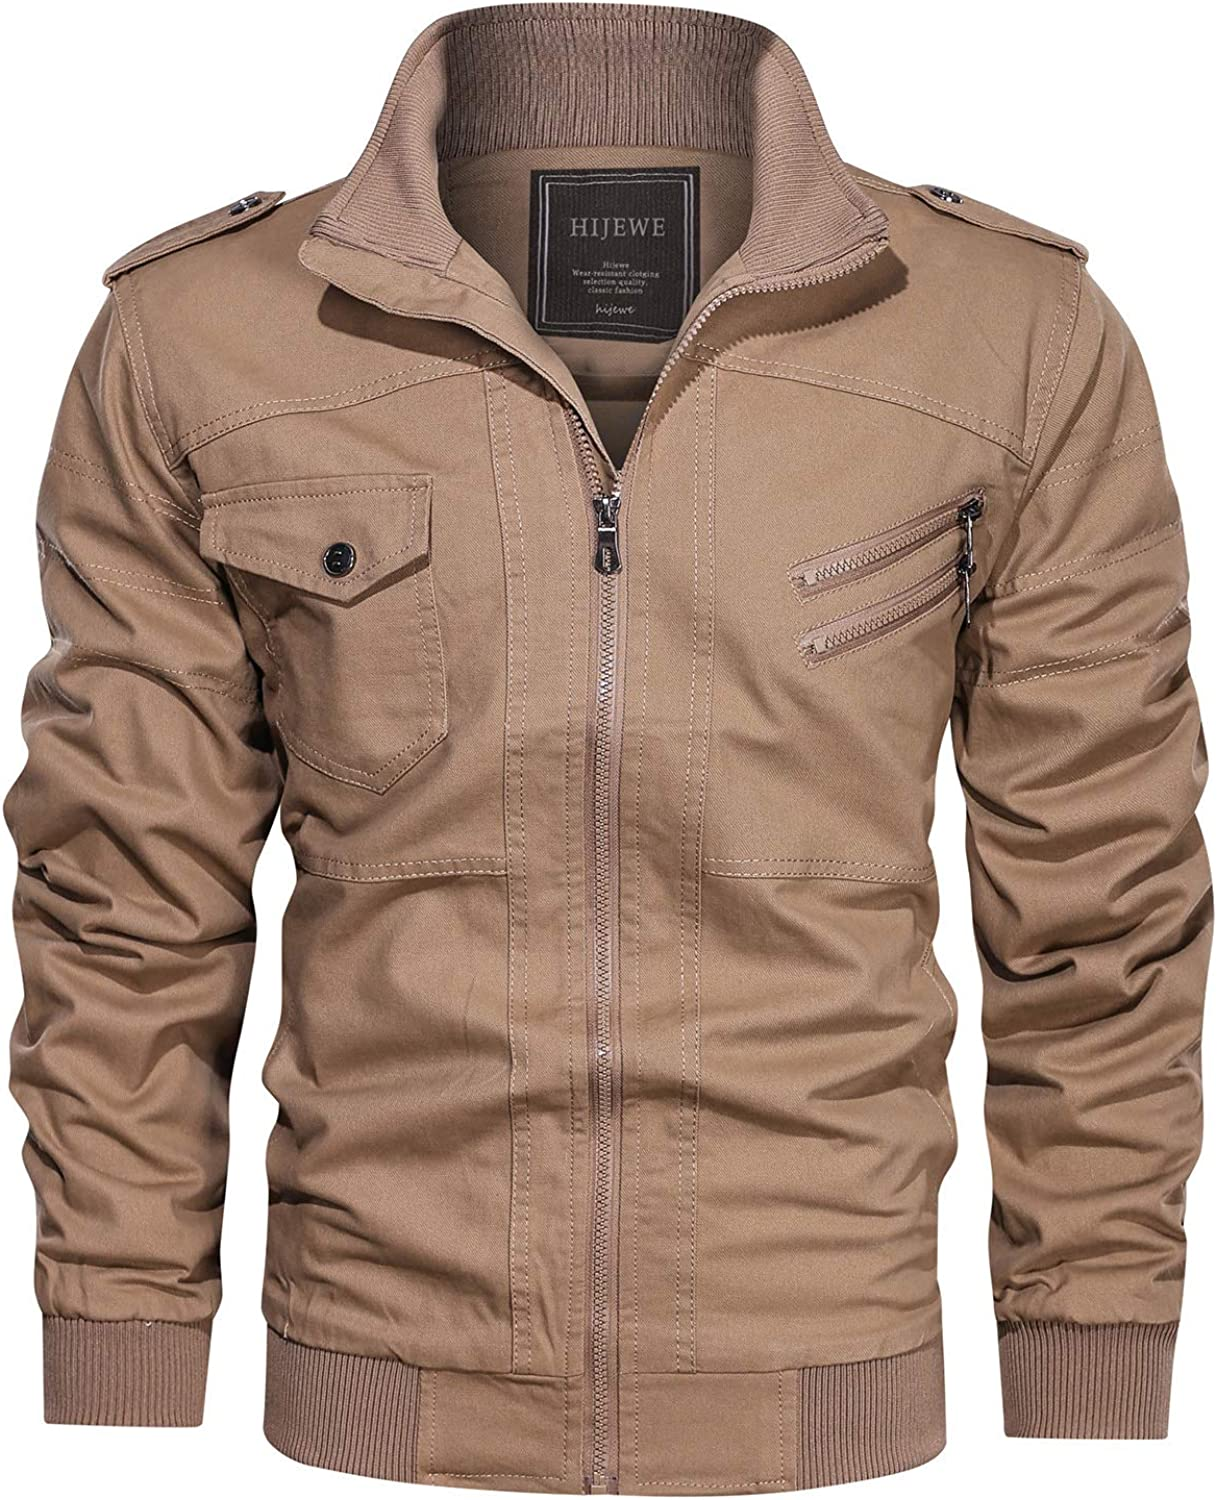 HIJEWE Men's Military Jacket Outdoor Lightweight Cotton Casual Bomber Coat at  Men's Clothing store